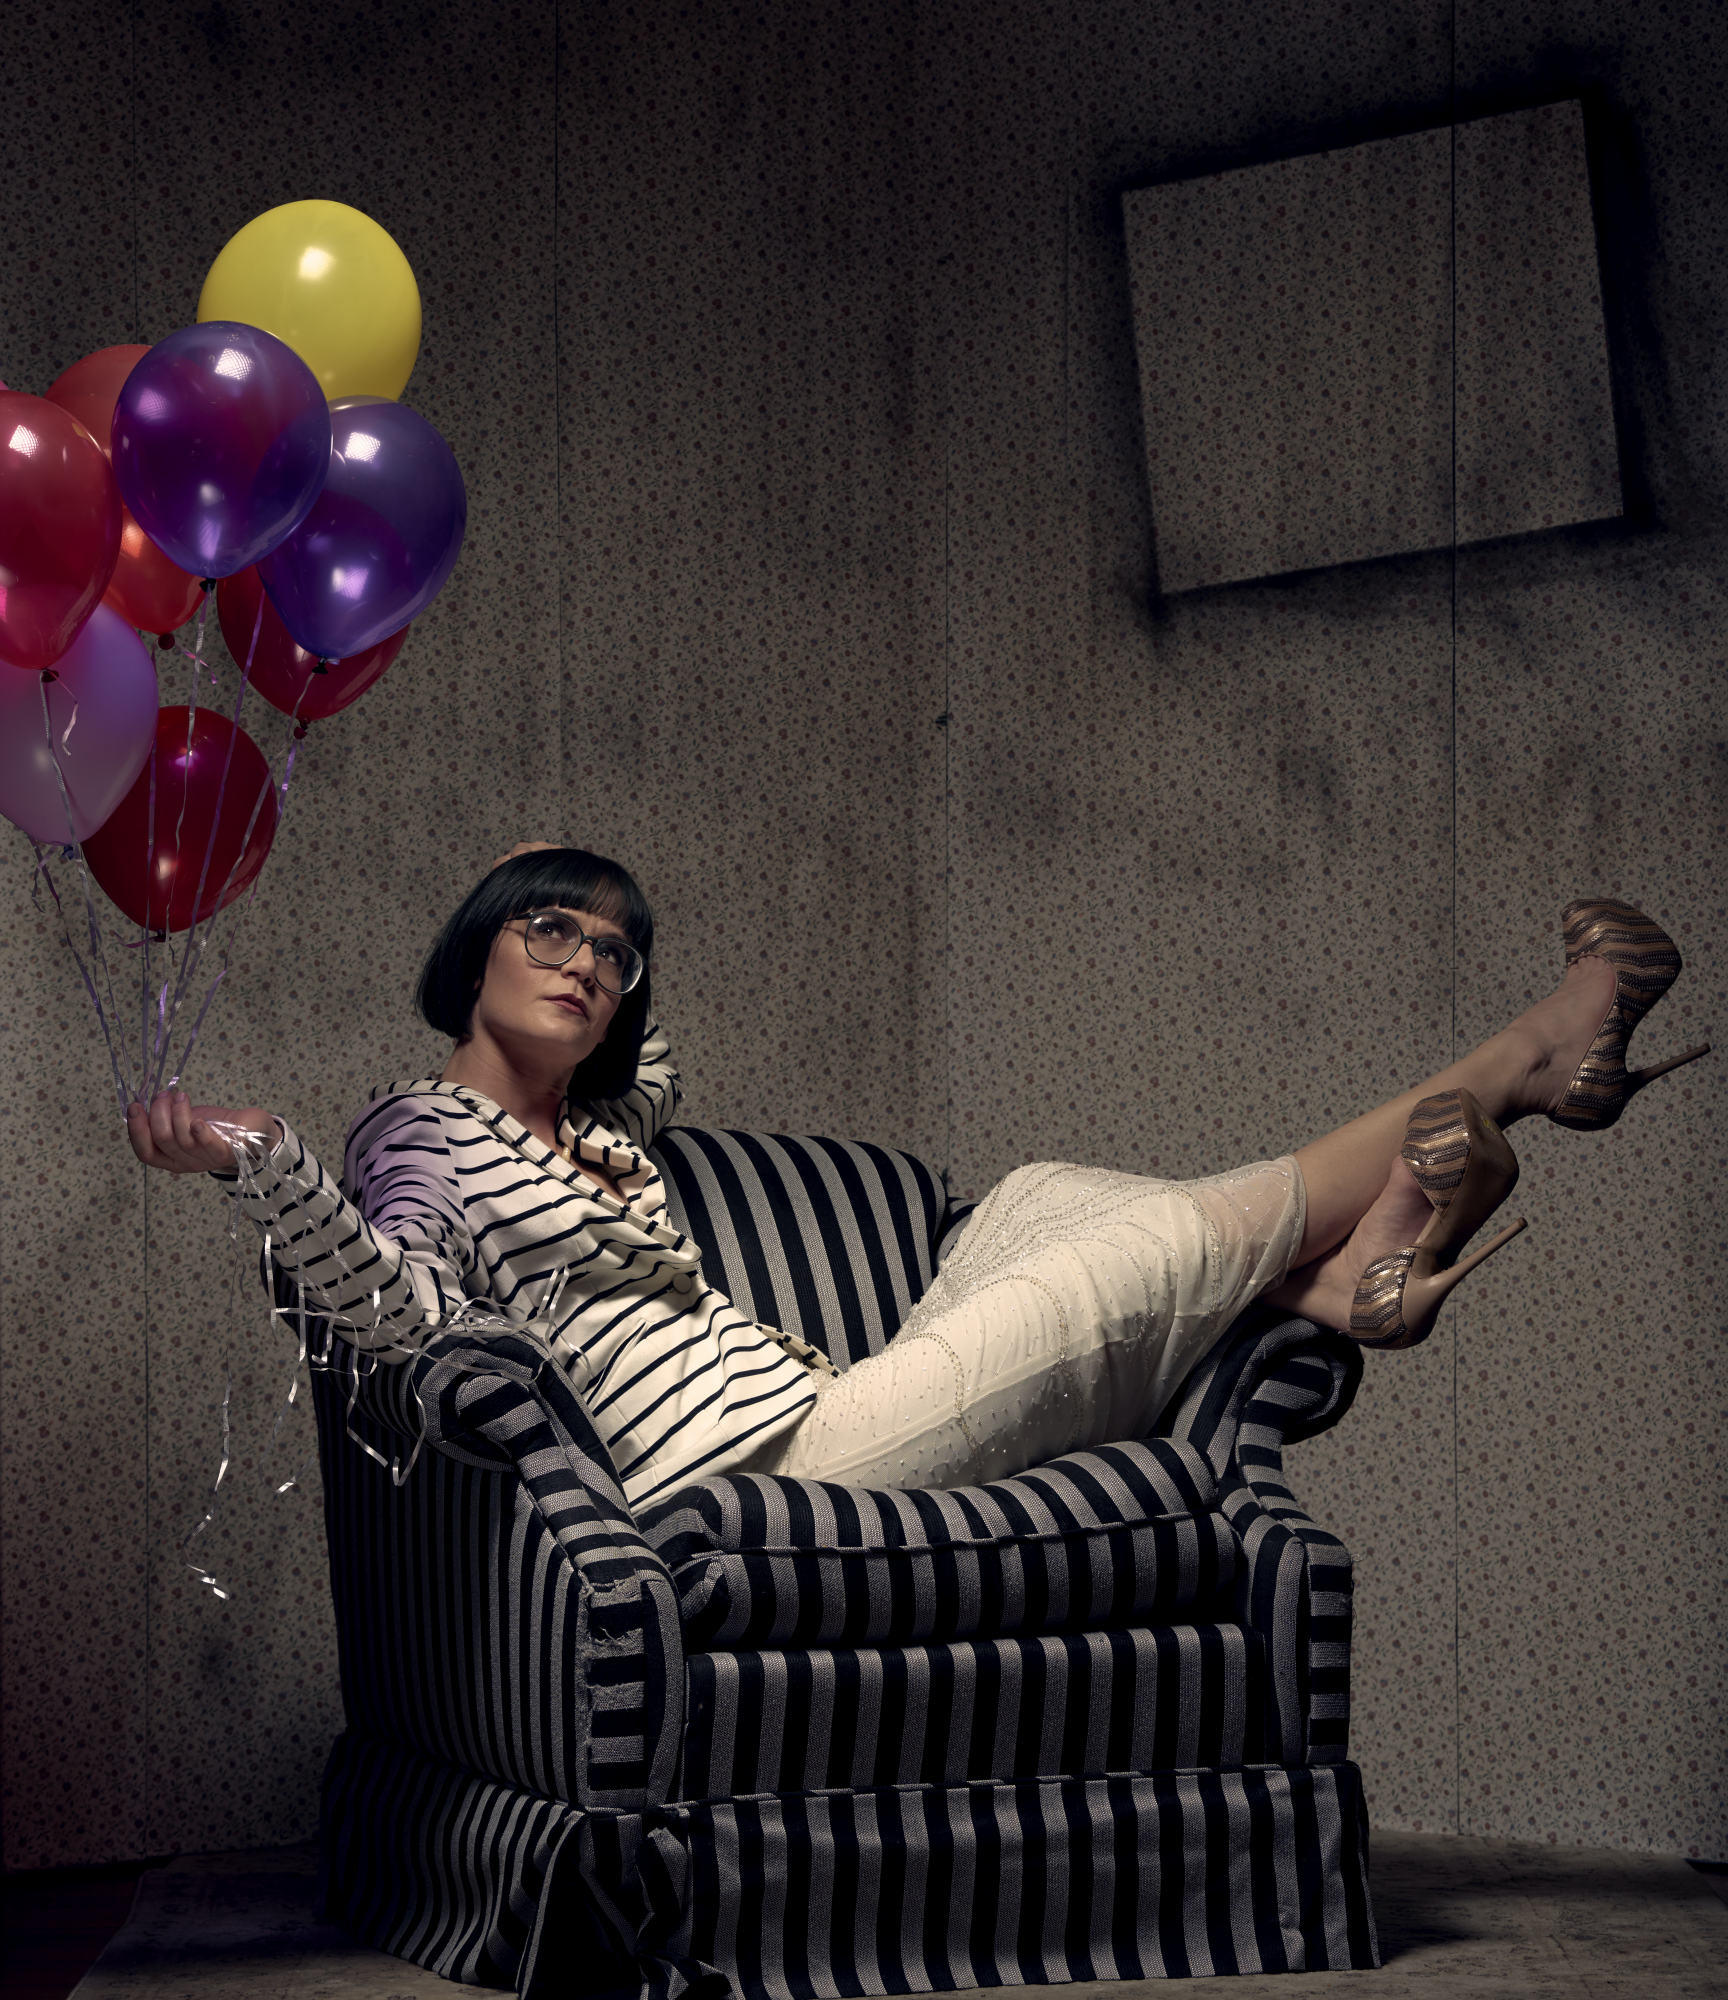 Girl with Baloons - Fashion Photography